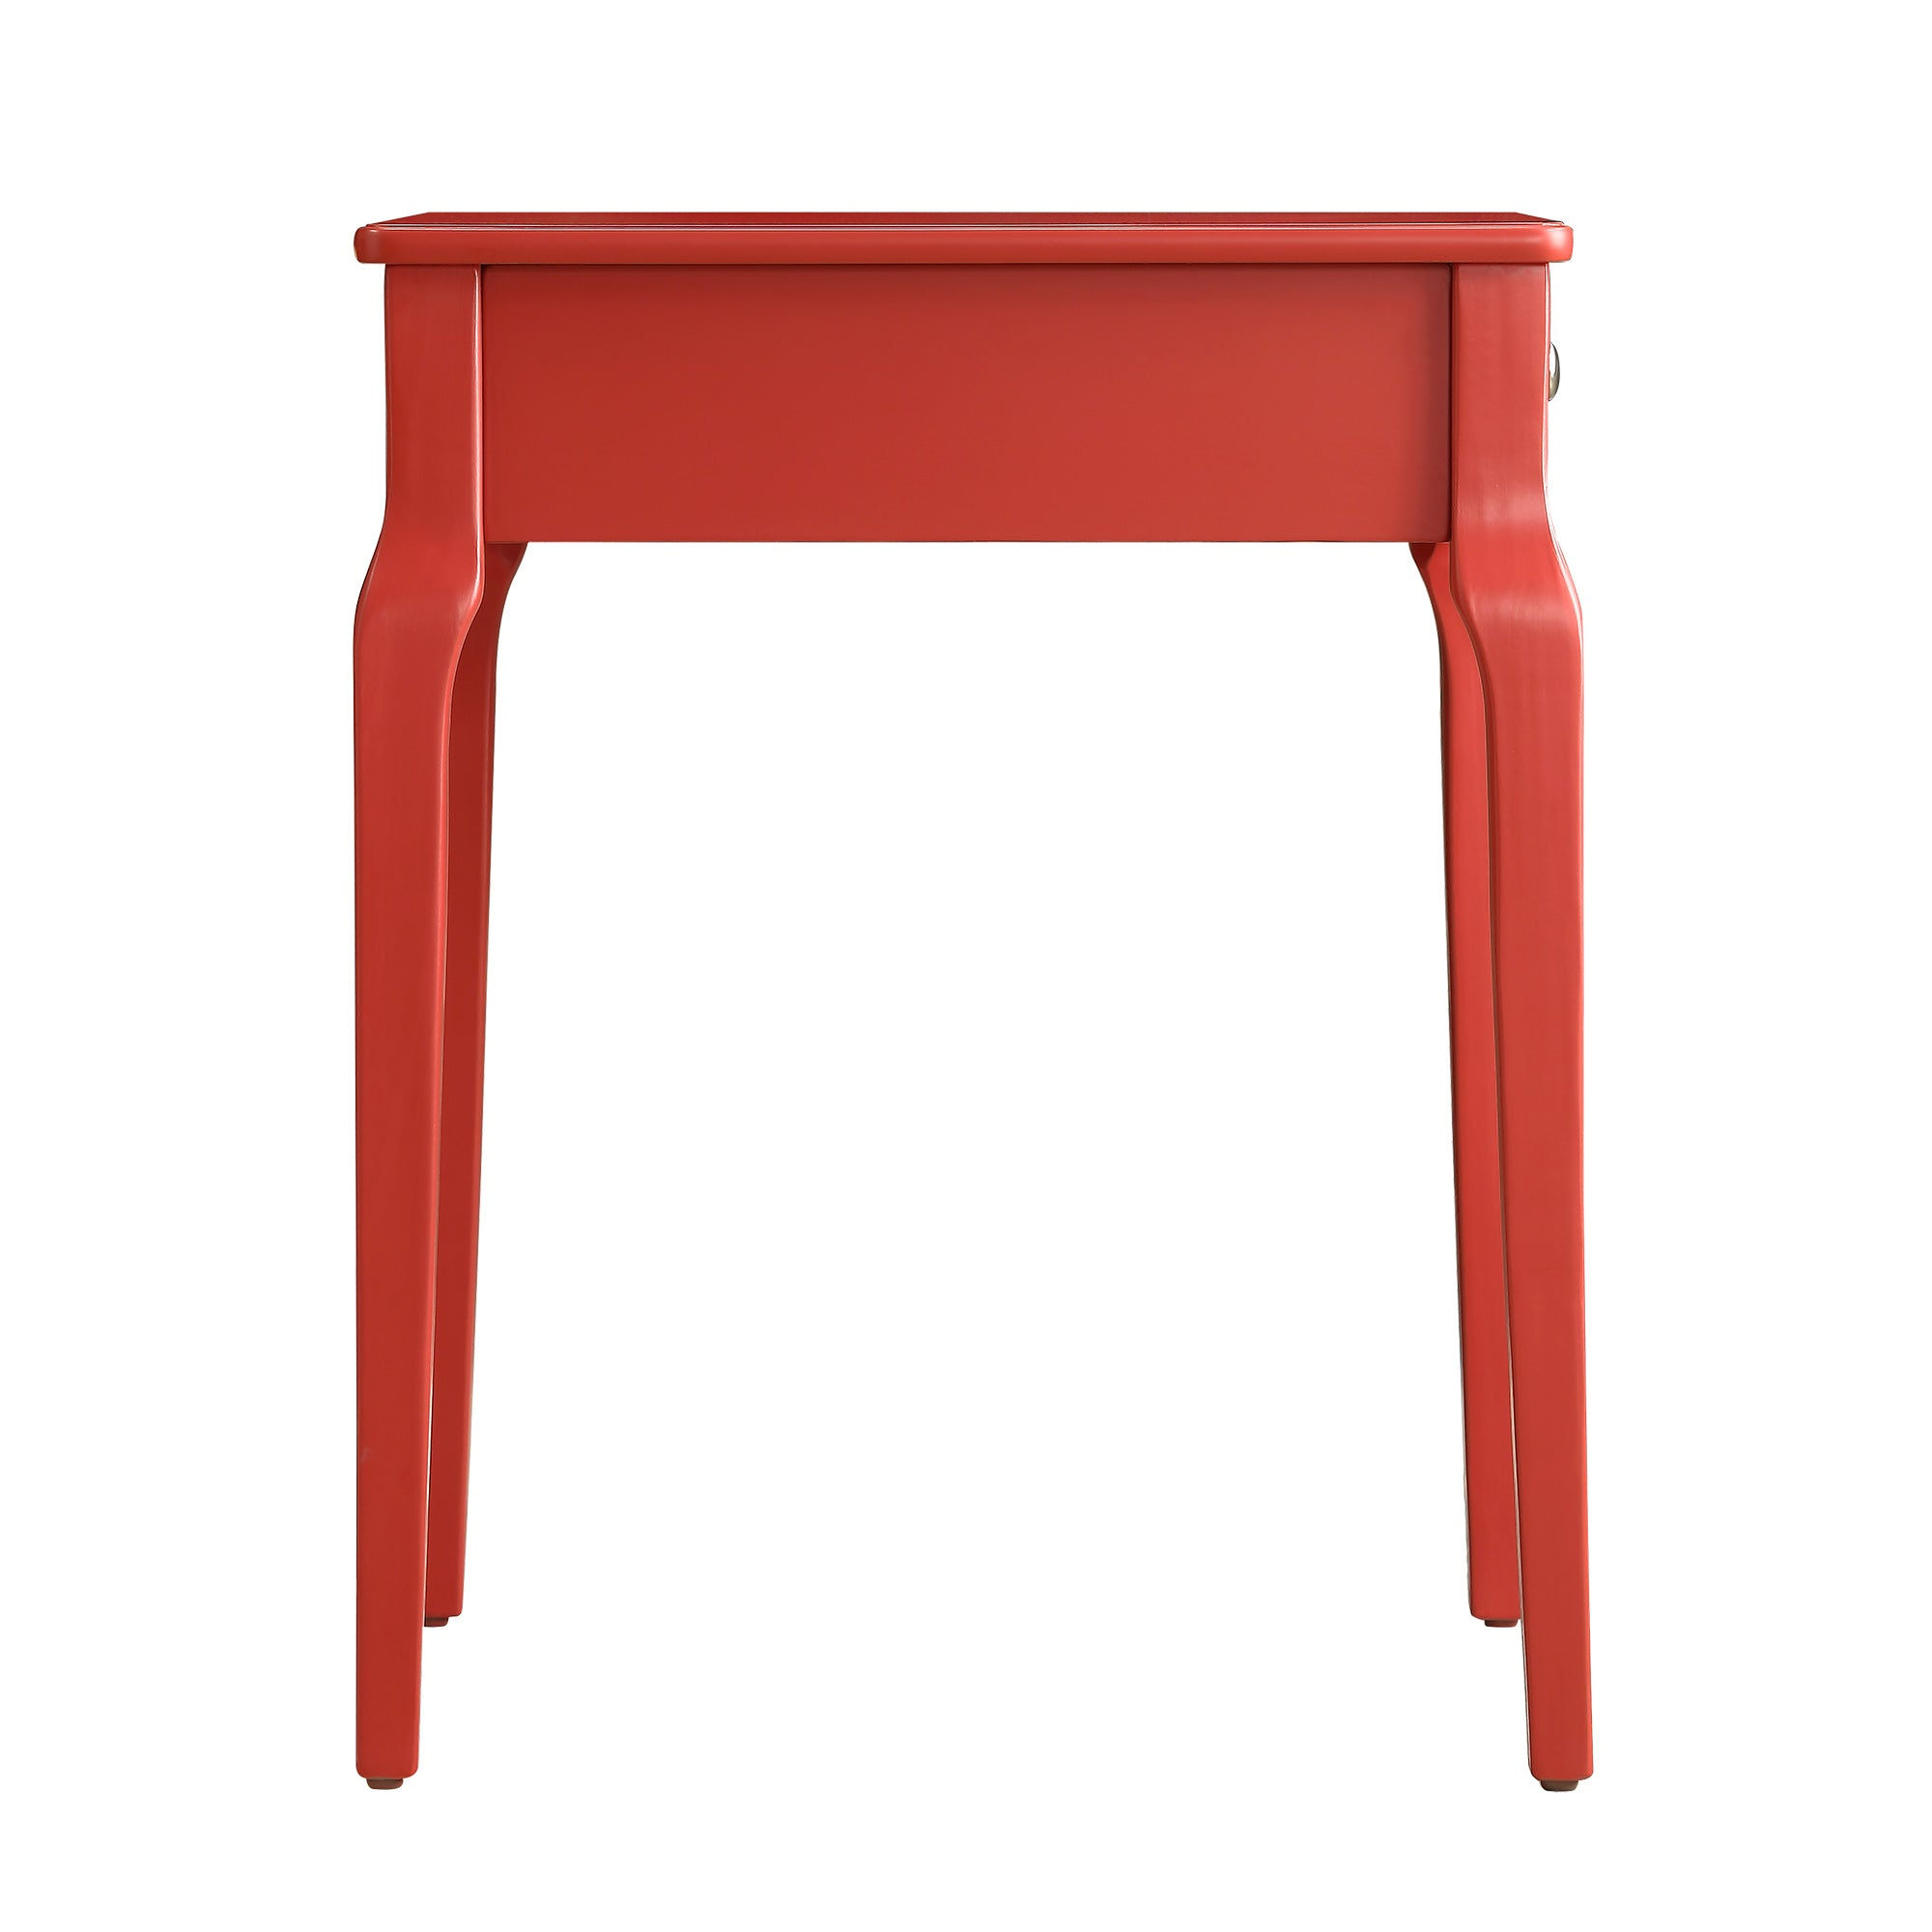 1-Drawer Storage Side Table - Red